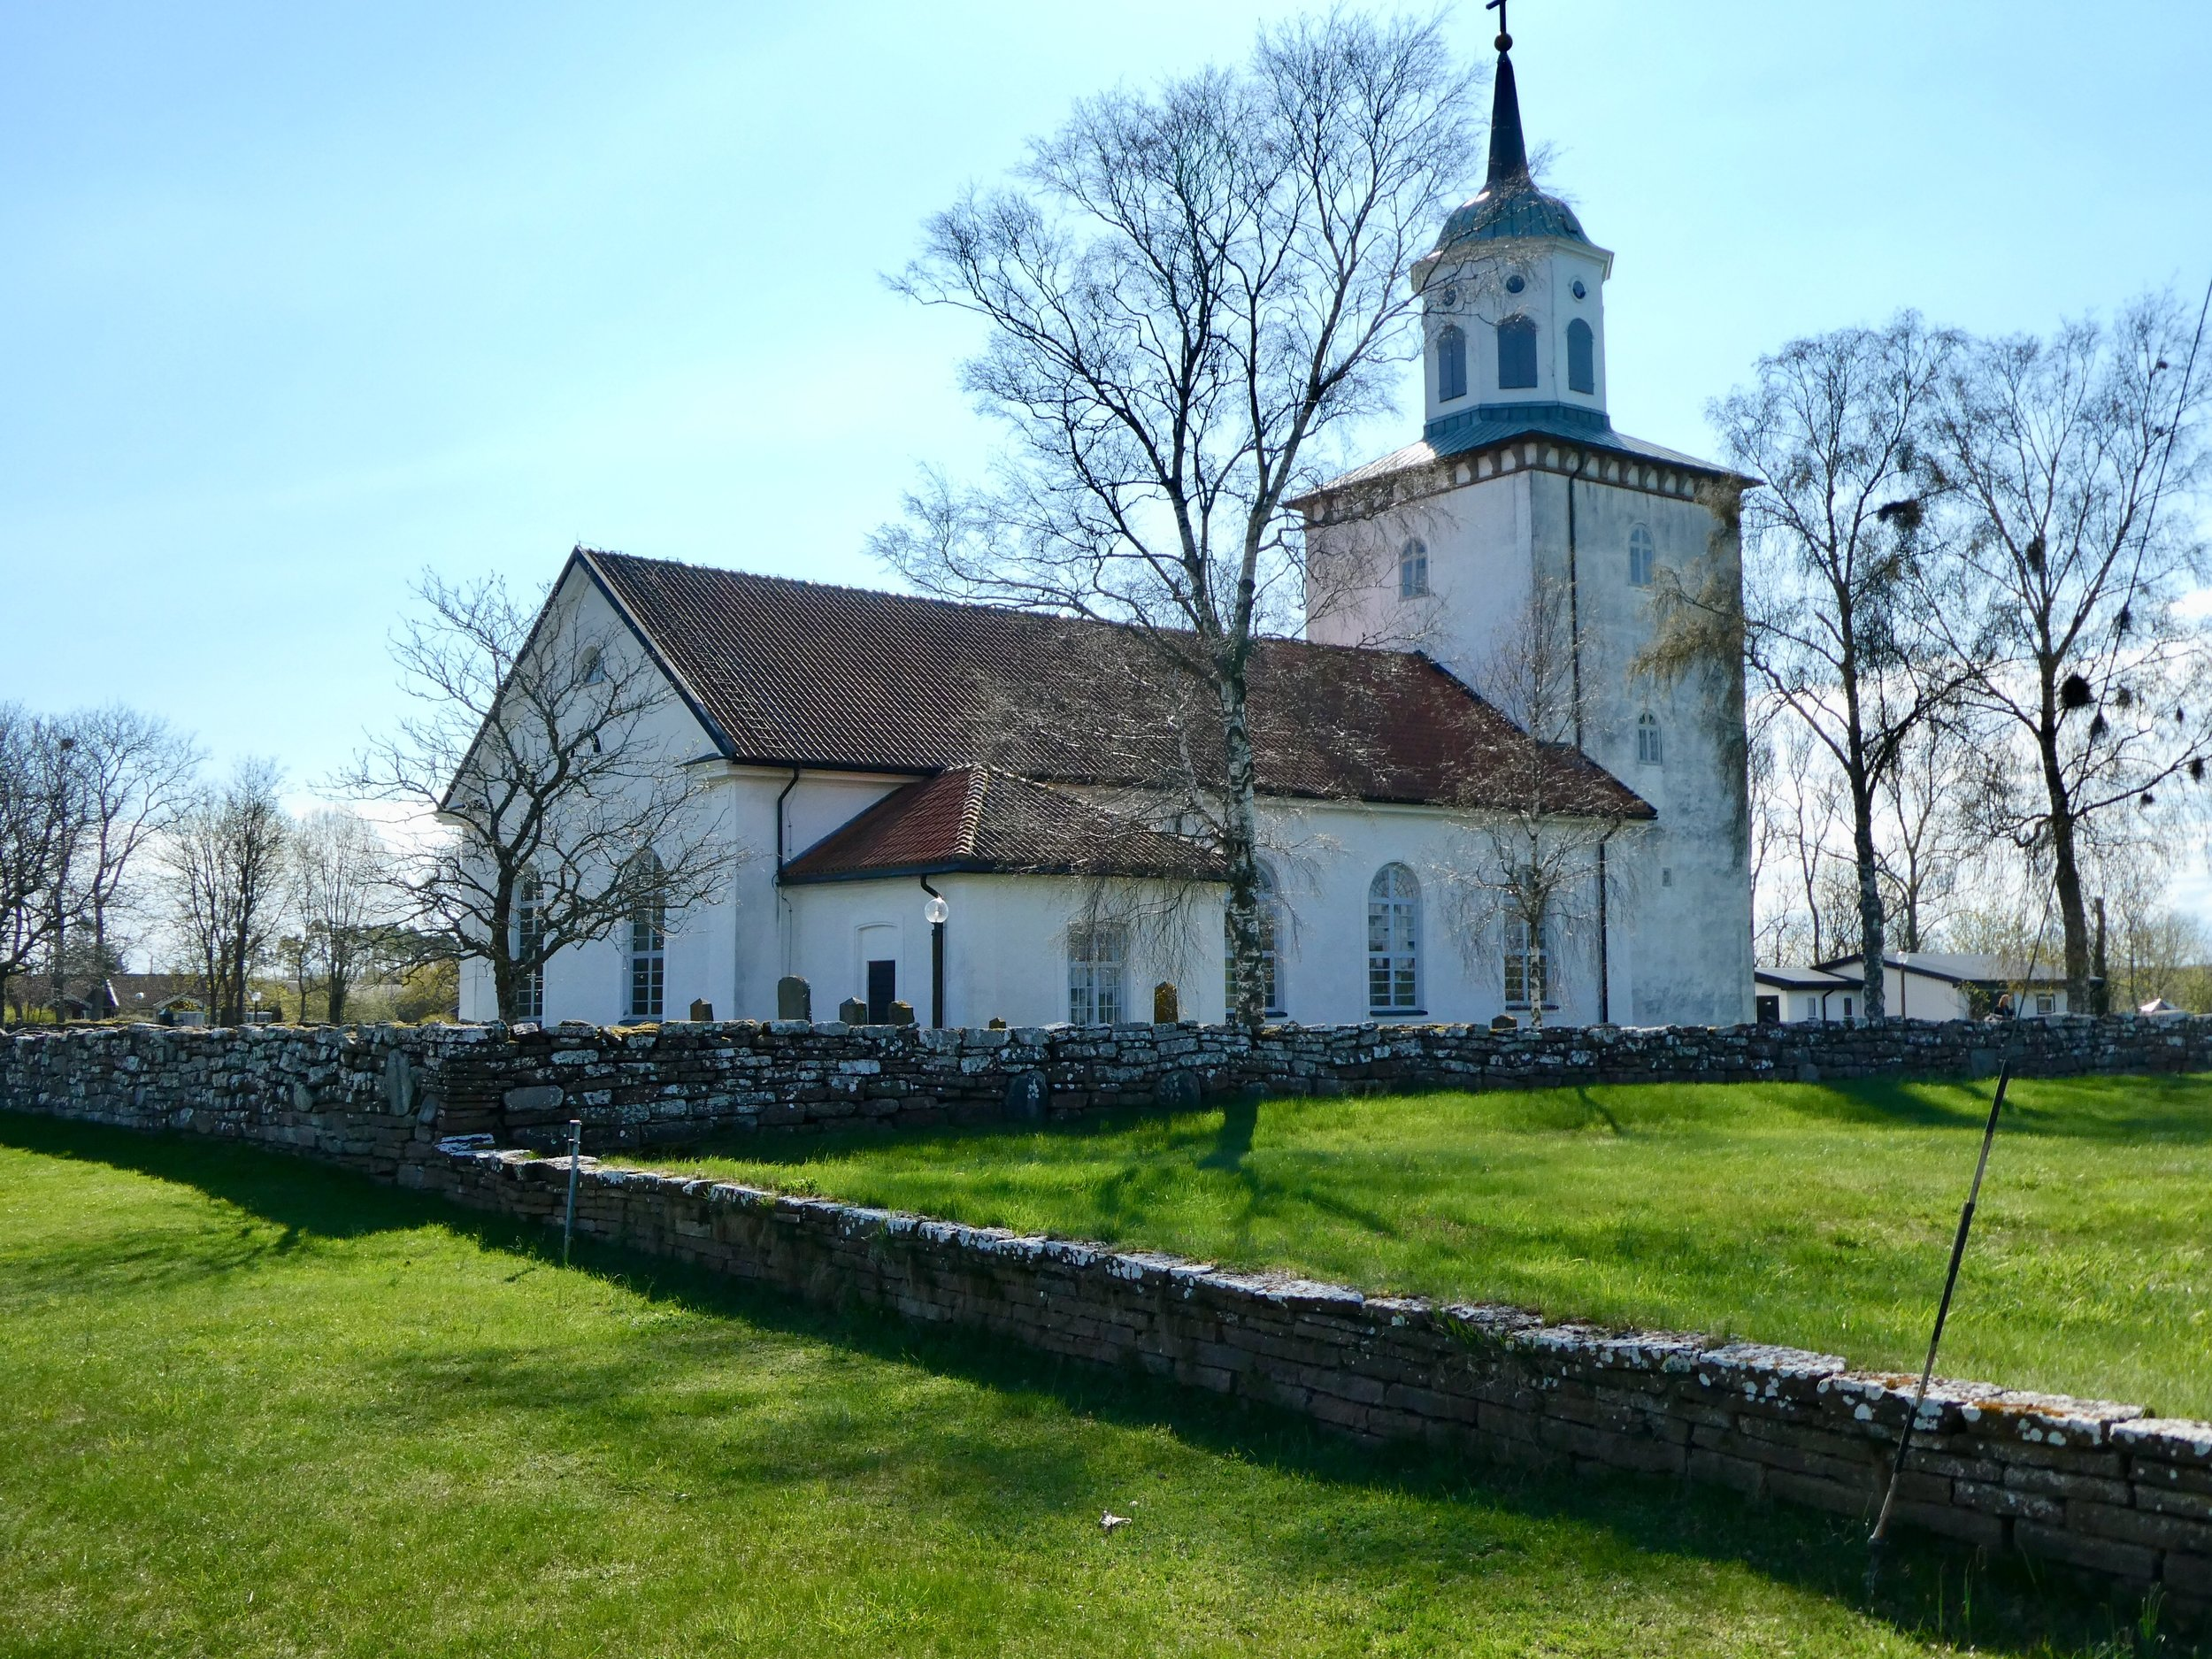 Lots of churches, thatched cottages, and Viking burial sites to see in Öland.